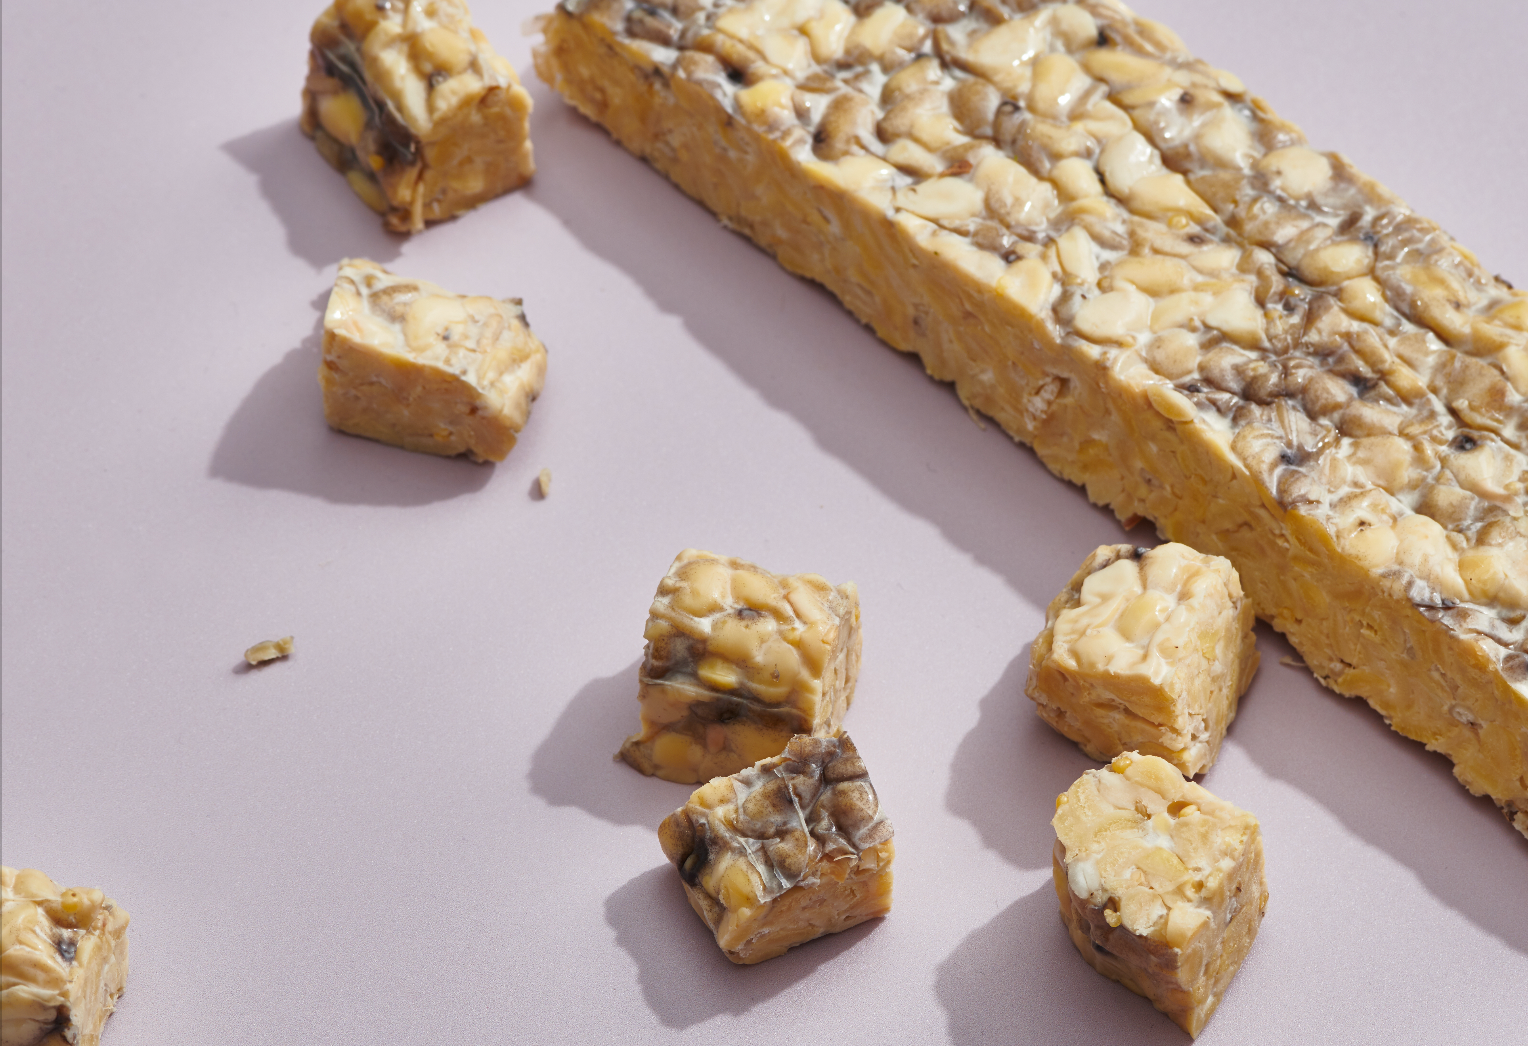 Tempeh, a versatile soy-based alternative protein product packing tons of vitamins and nurtients.